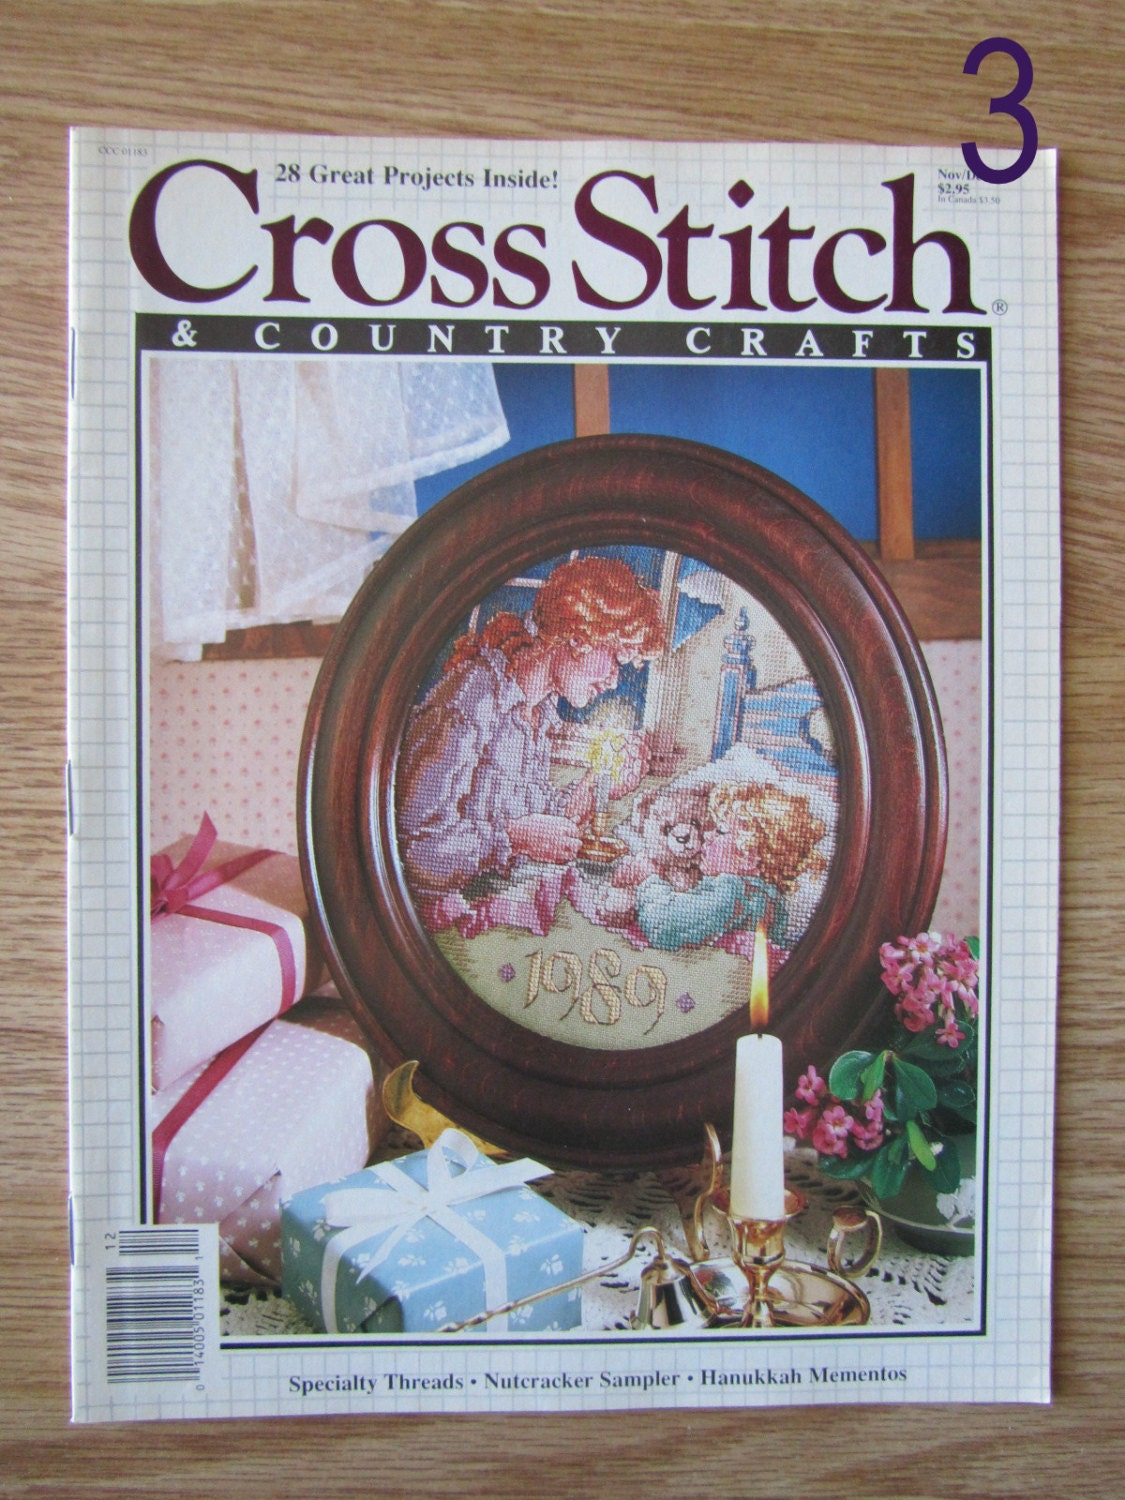 Cross stitch country crafts magazine back issues -  3 00 Shipping